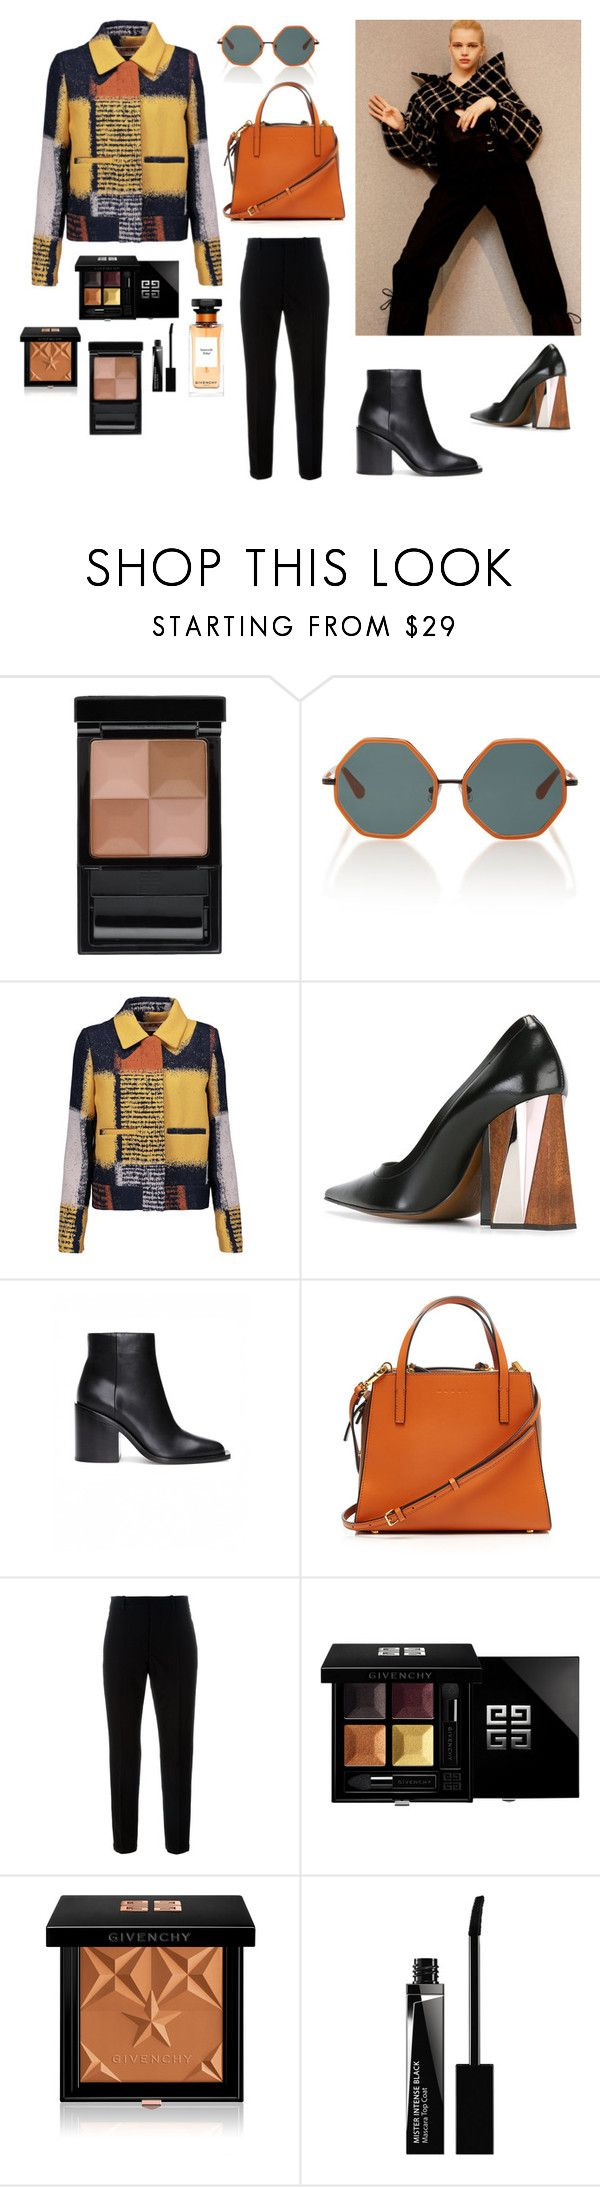 """""""captain crunch"""" by wednesday-williams ❤ liked on Polyvore featuring Givenchy, Rosie Assoulin, Marni, StreetStyle, Winter and winter2017"""